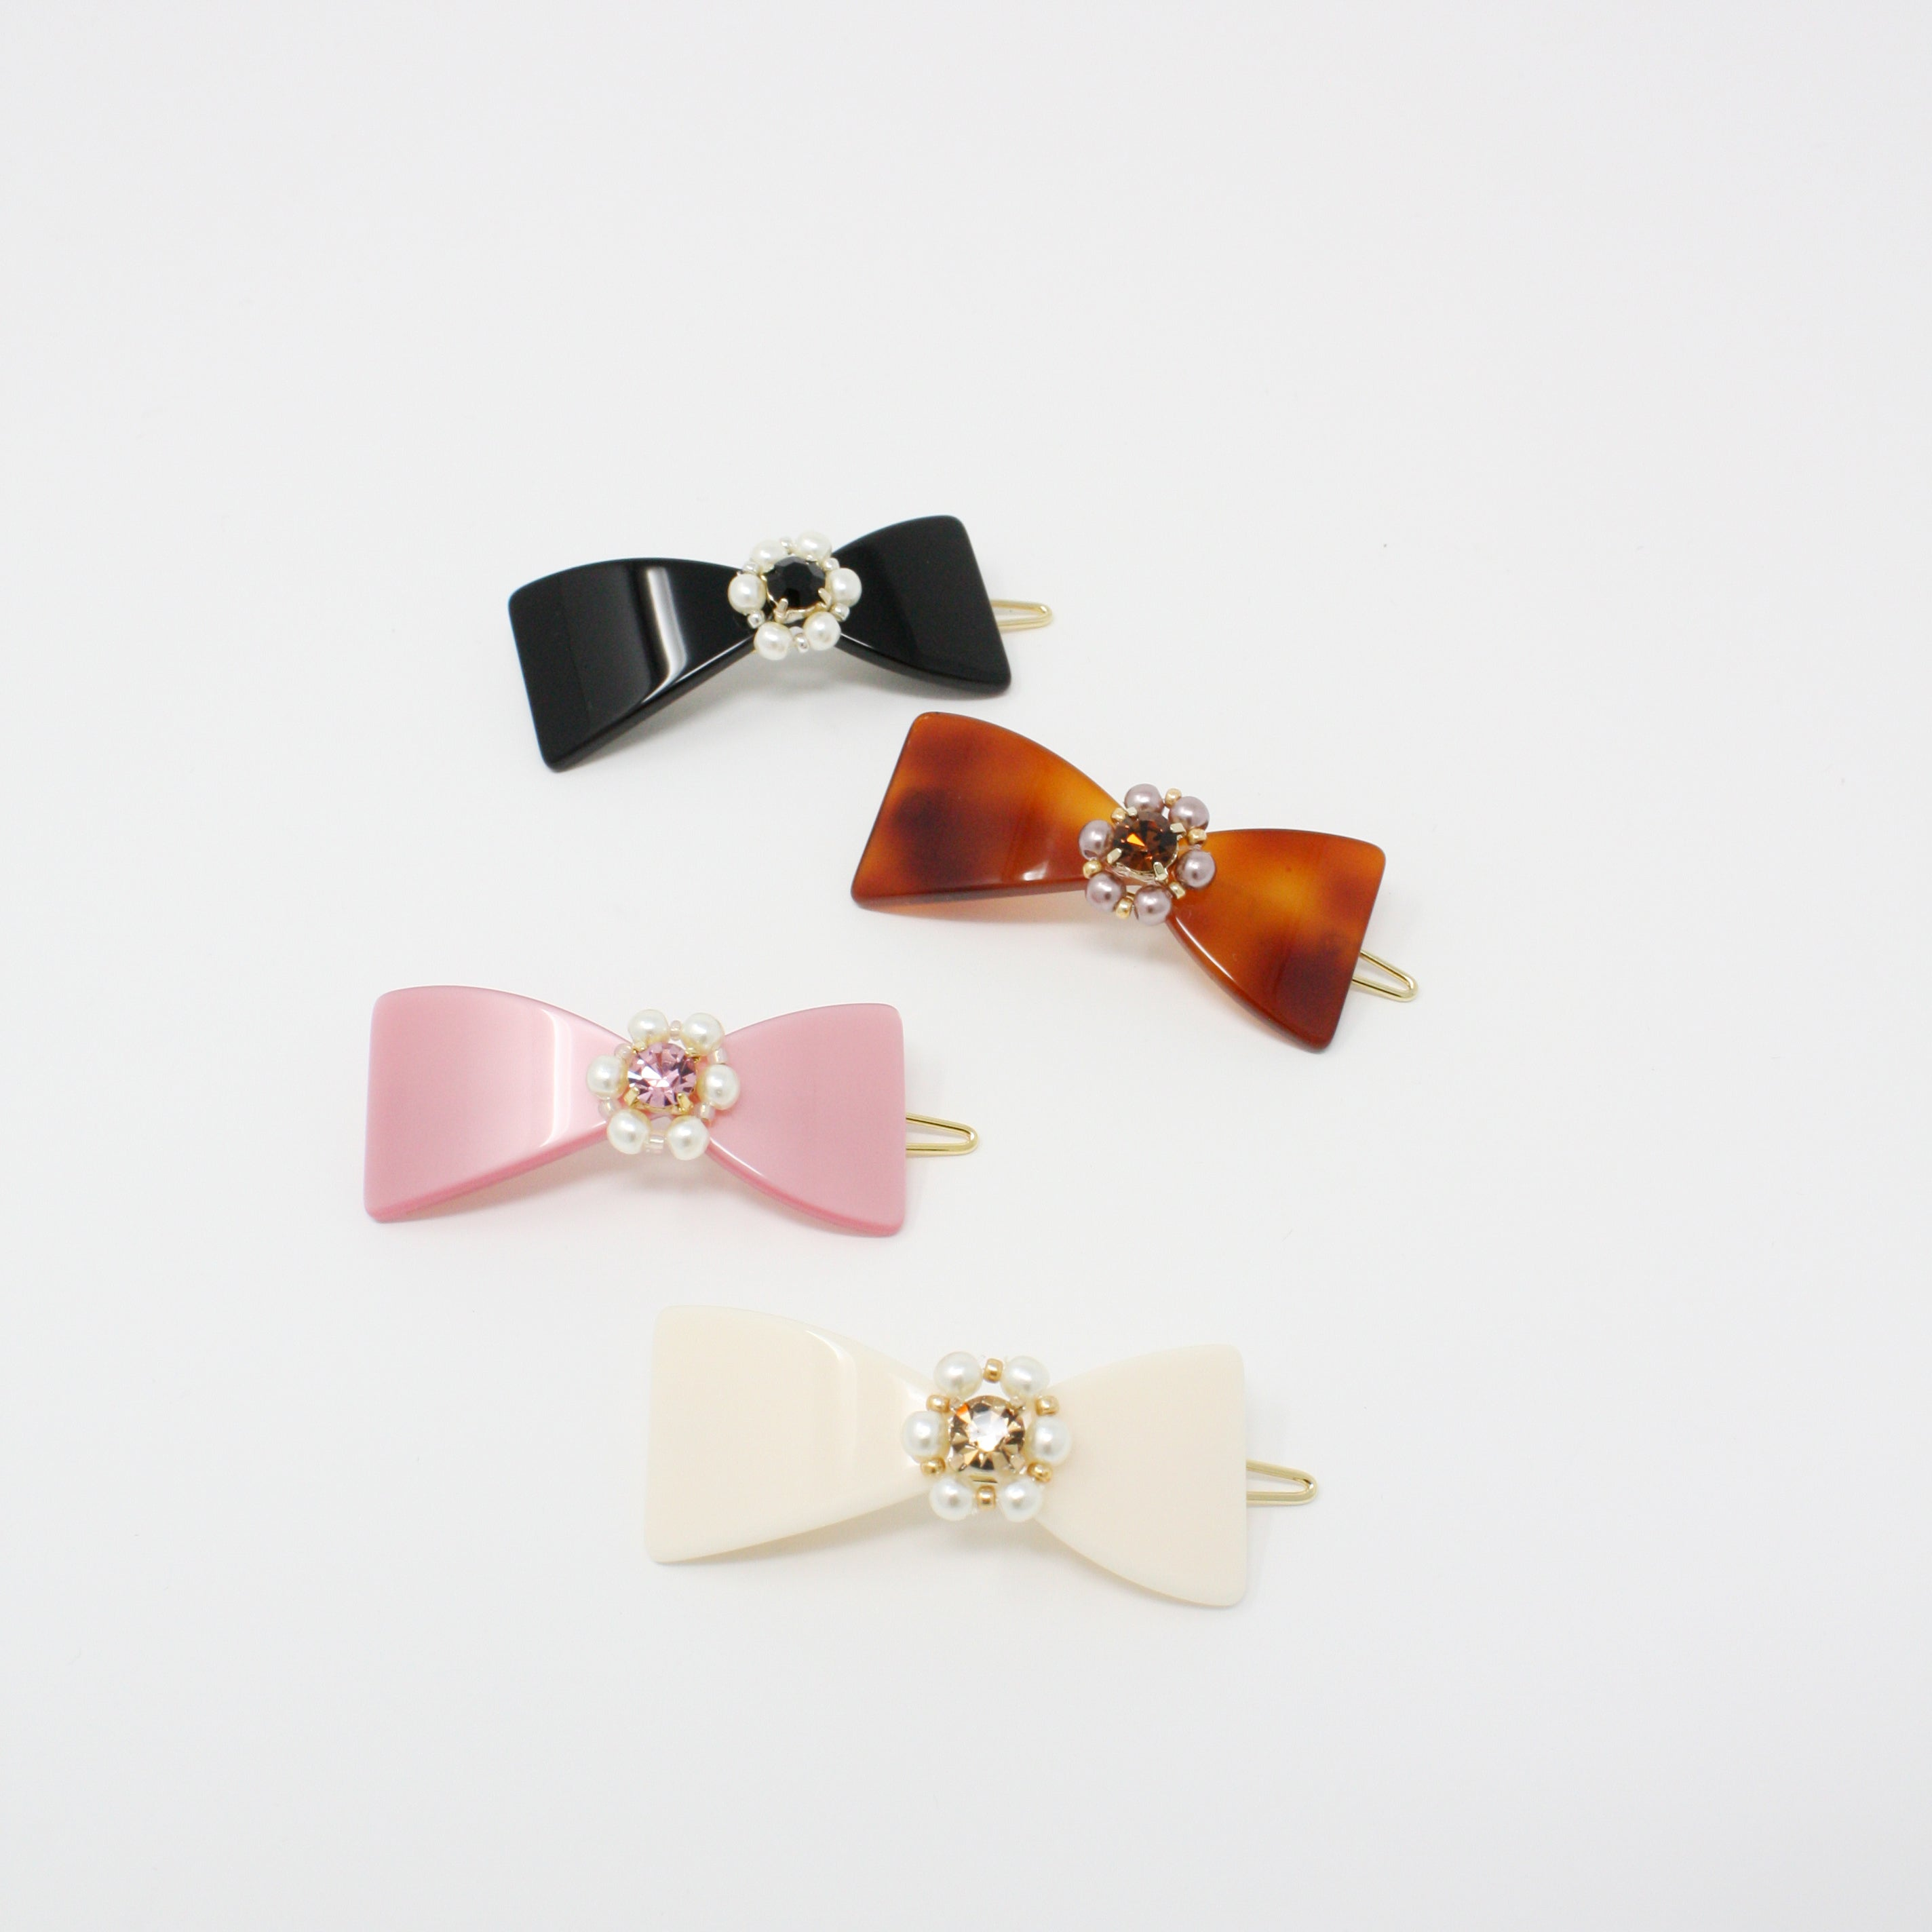 LFSL0259 - Bow Hair Barrette with Crystal & Pearl Point